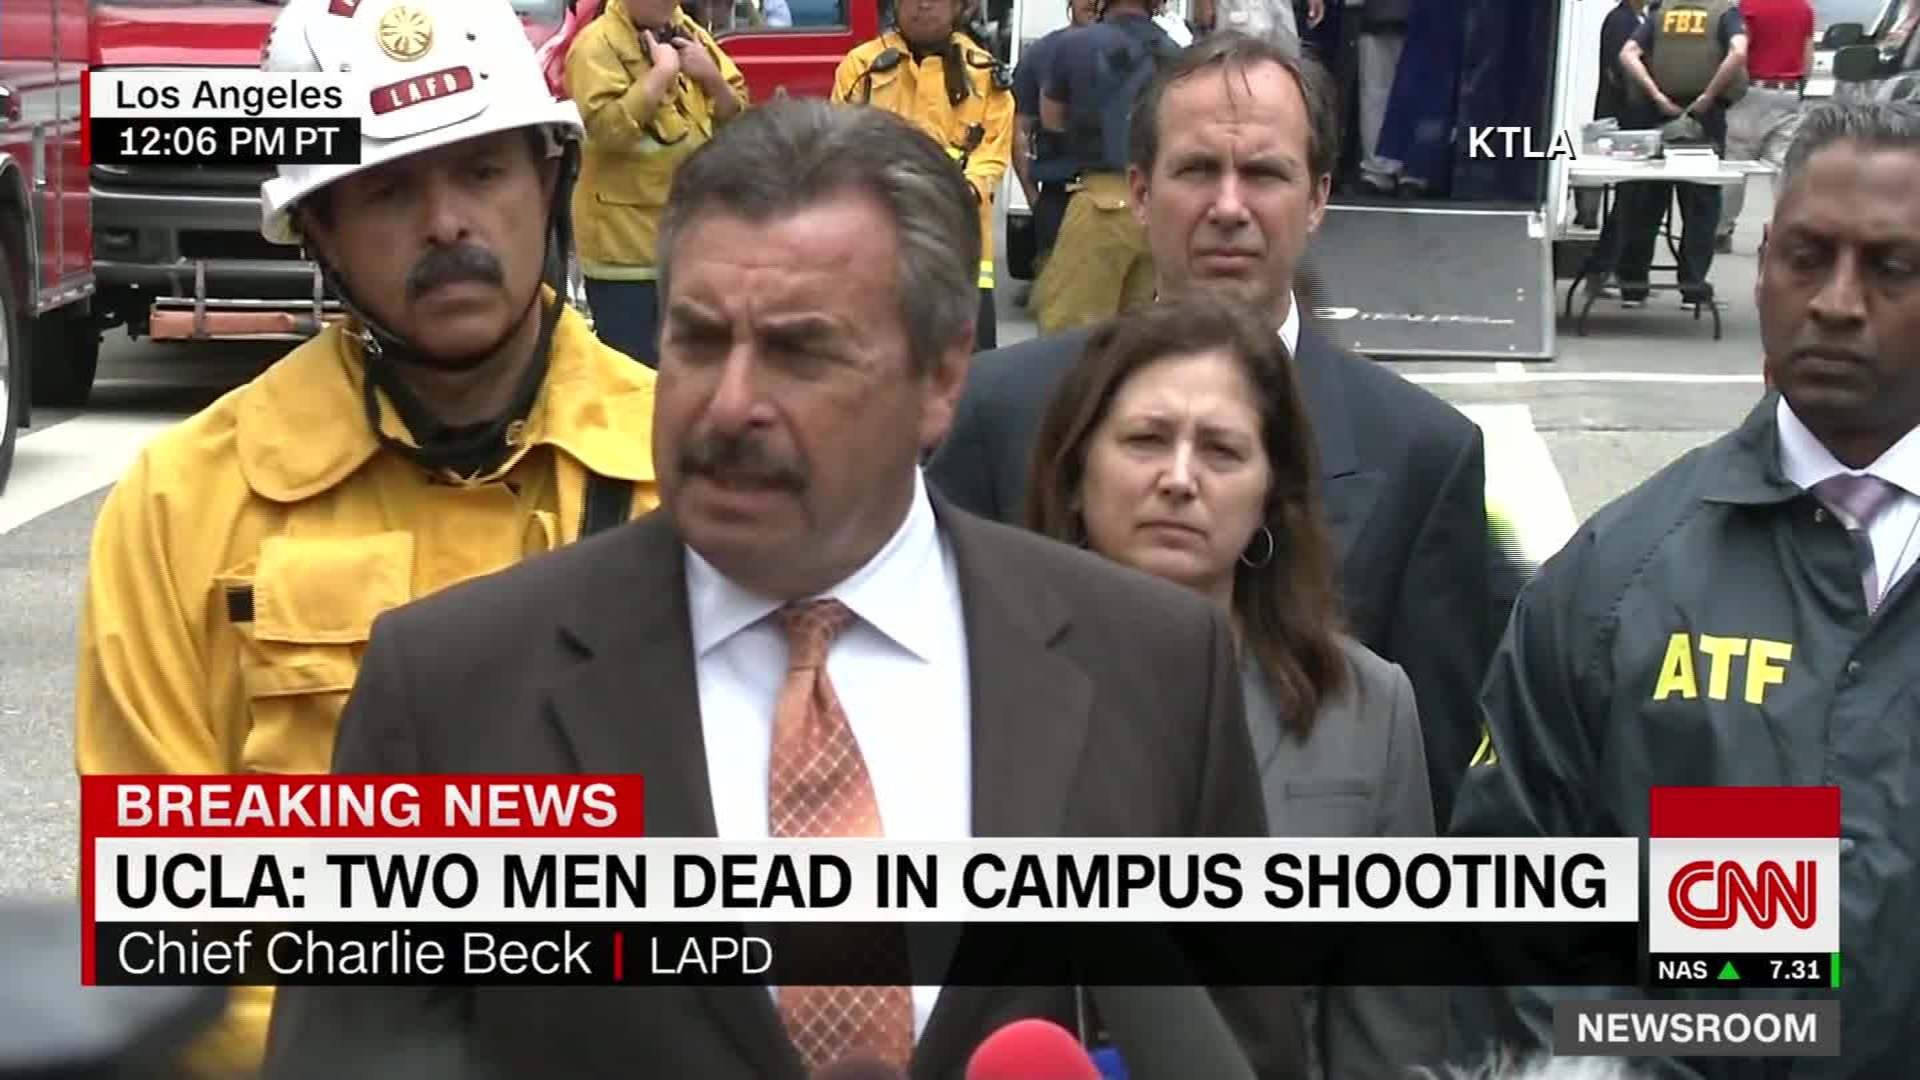 UCLA shooting: Shelter in place - CNN Video